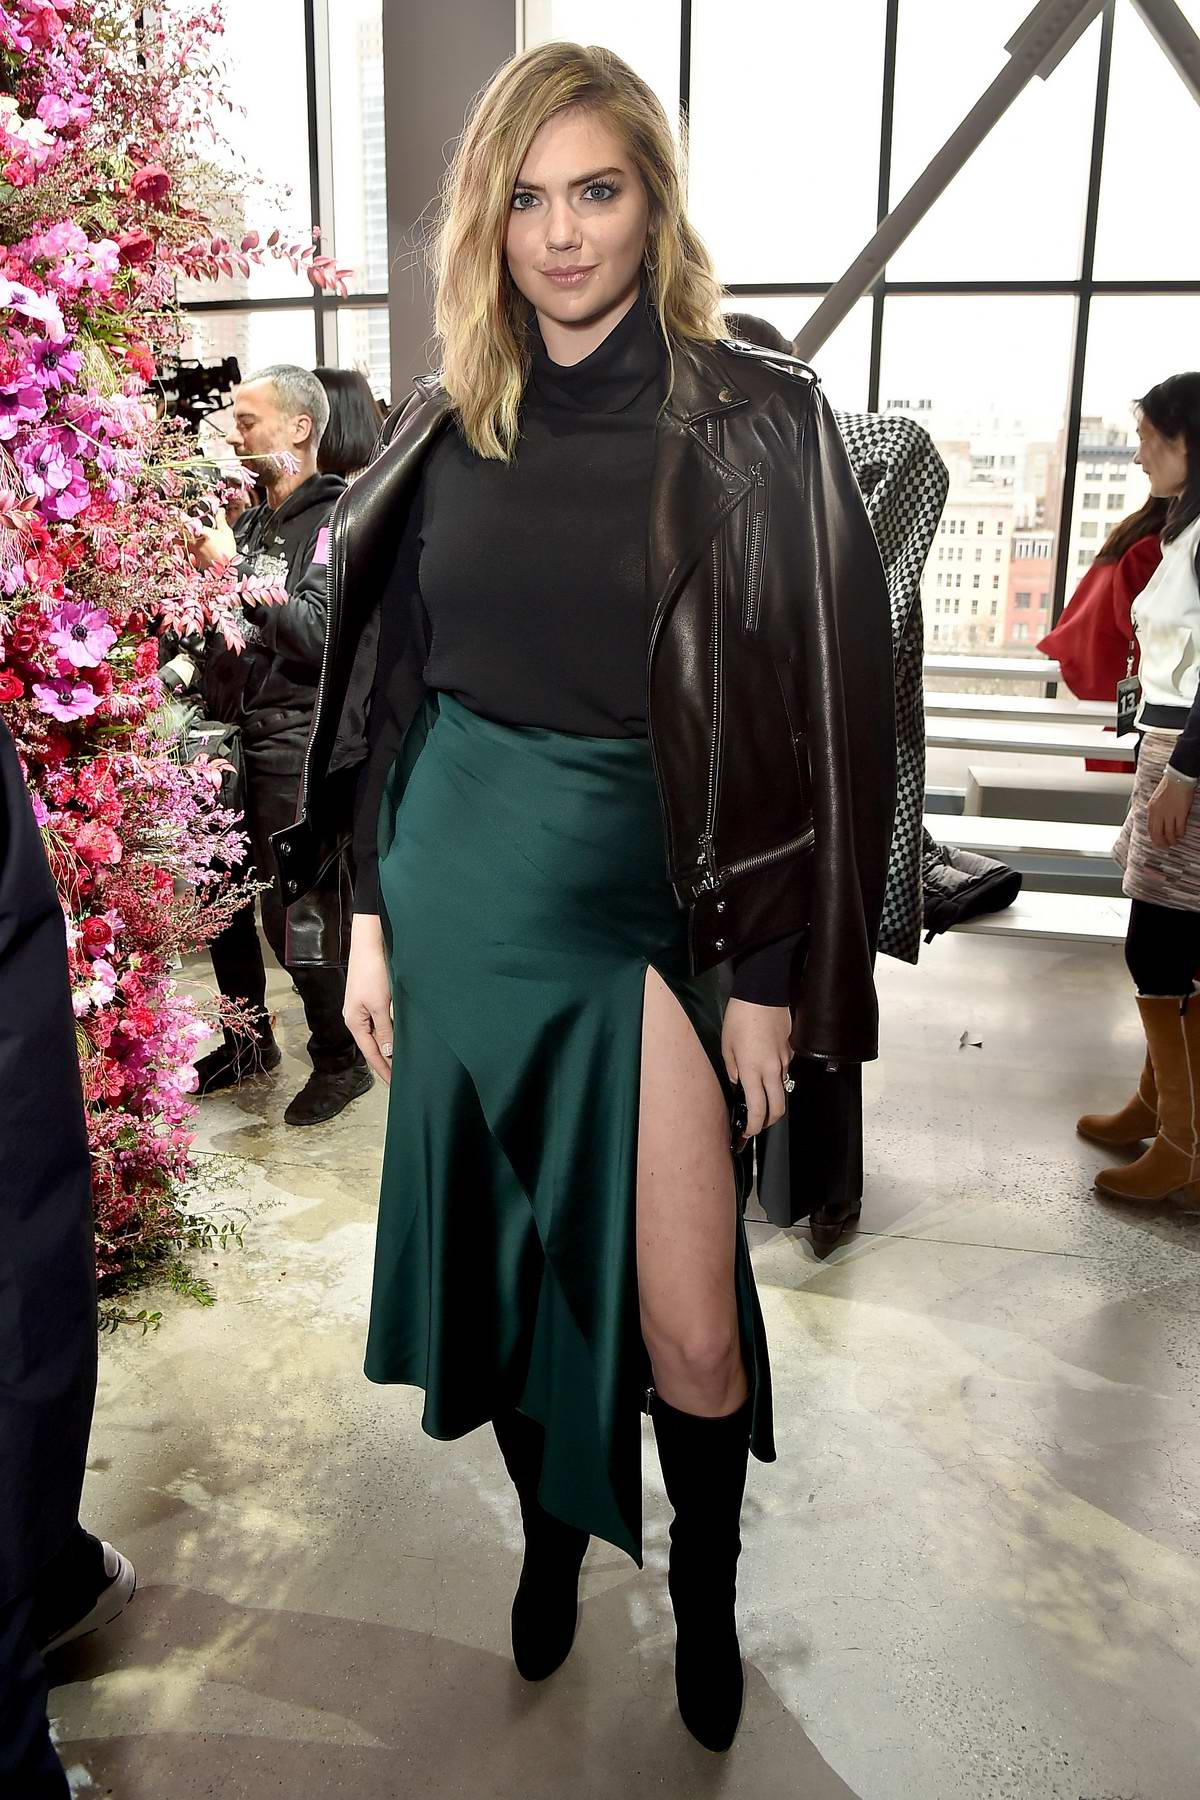 Kate Upton at Jason Wu Show during New York Fashion Week, Fall 2018 in New York City